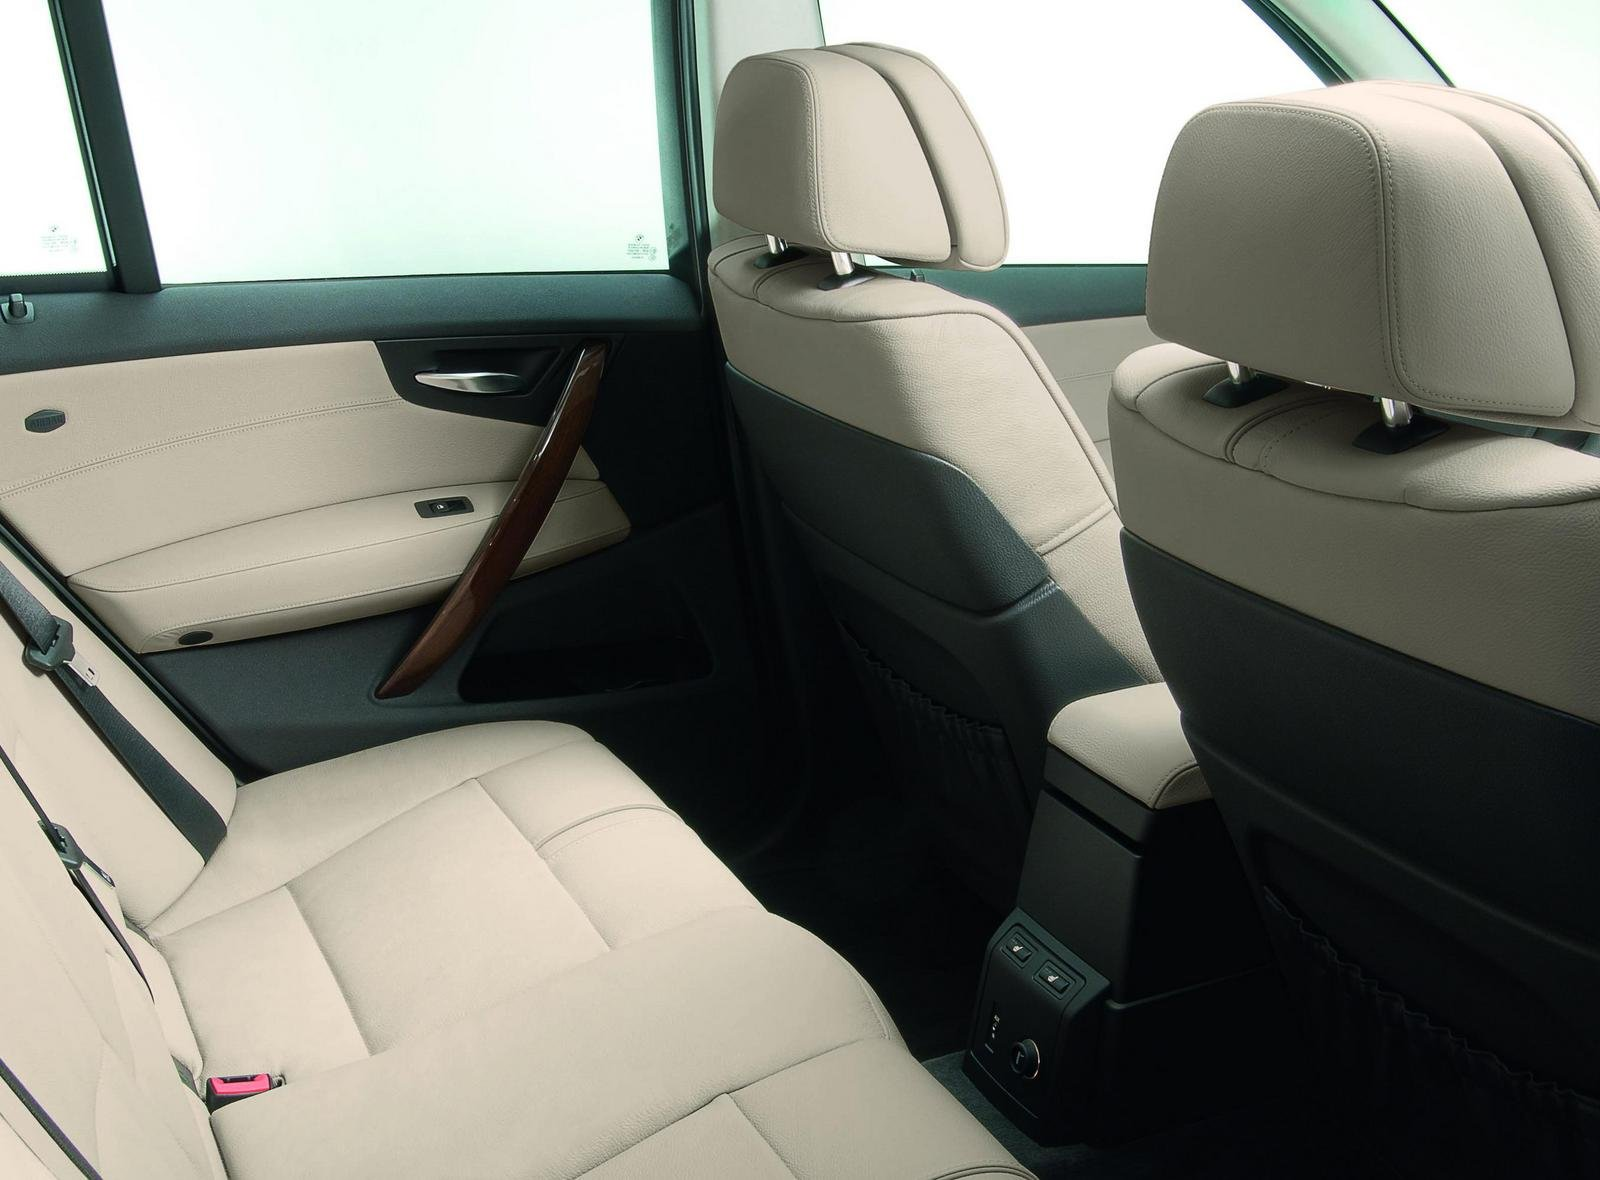 2009 bmw x3 edition exclusive and lifestyle picture 256163 car review top speed. Black Bedroom Furniture Sets. Home Design Ideas